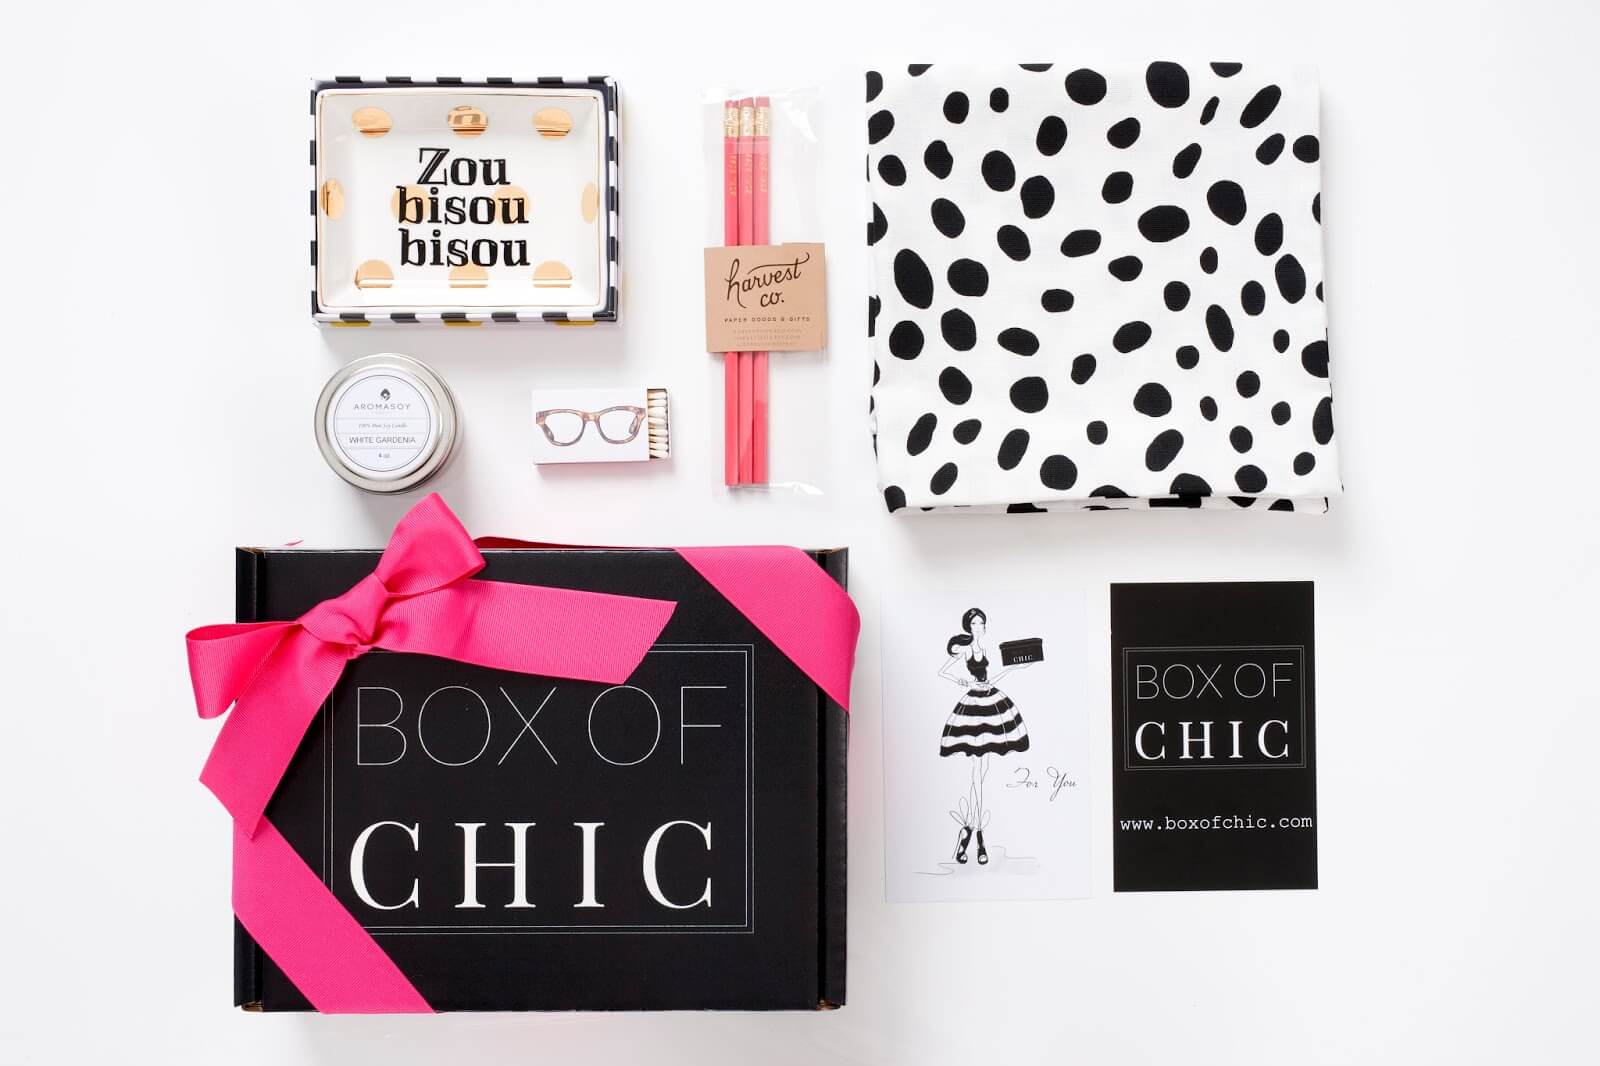 Collect This Idea Box Of Chic Home Decor Subscription